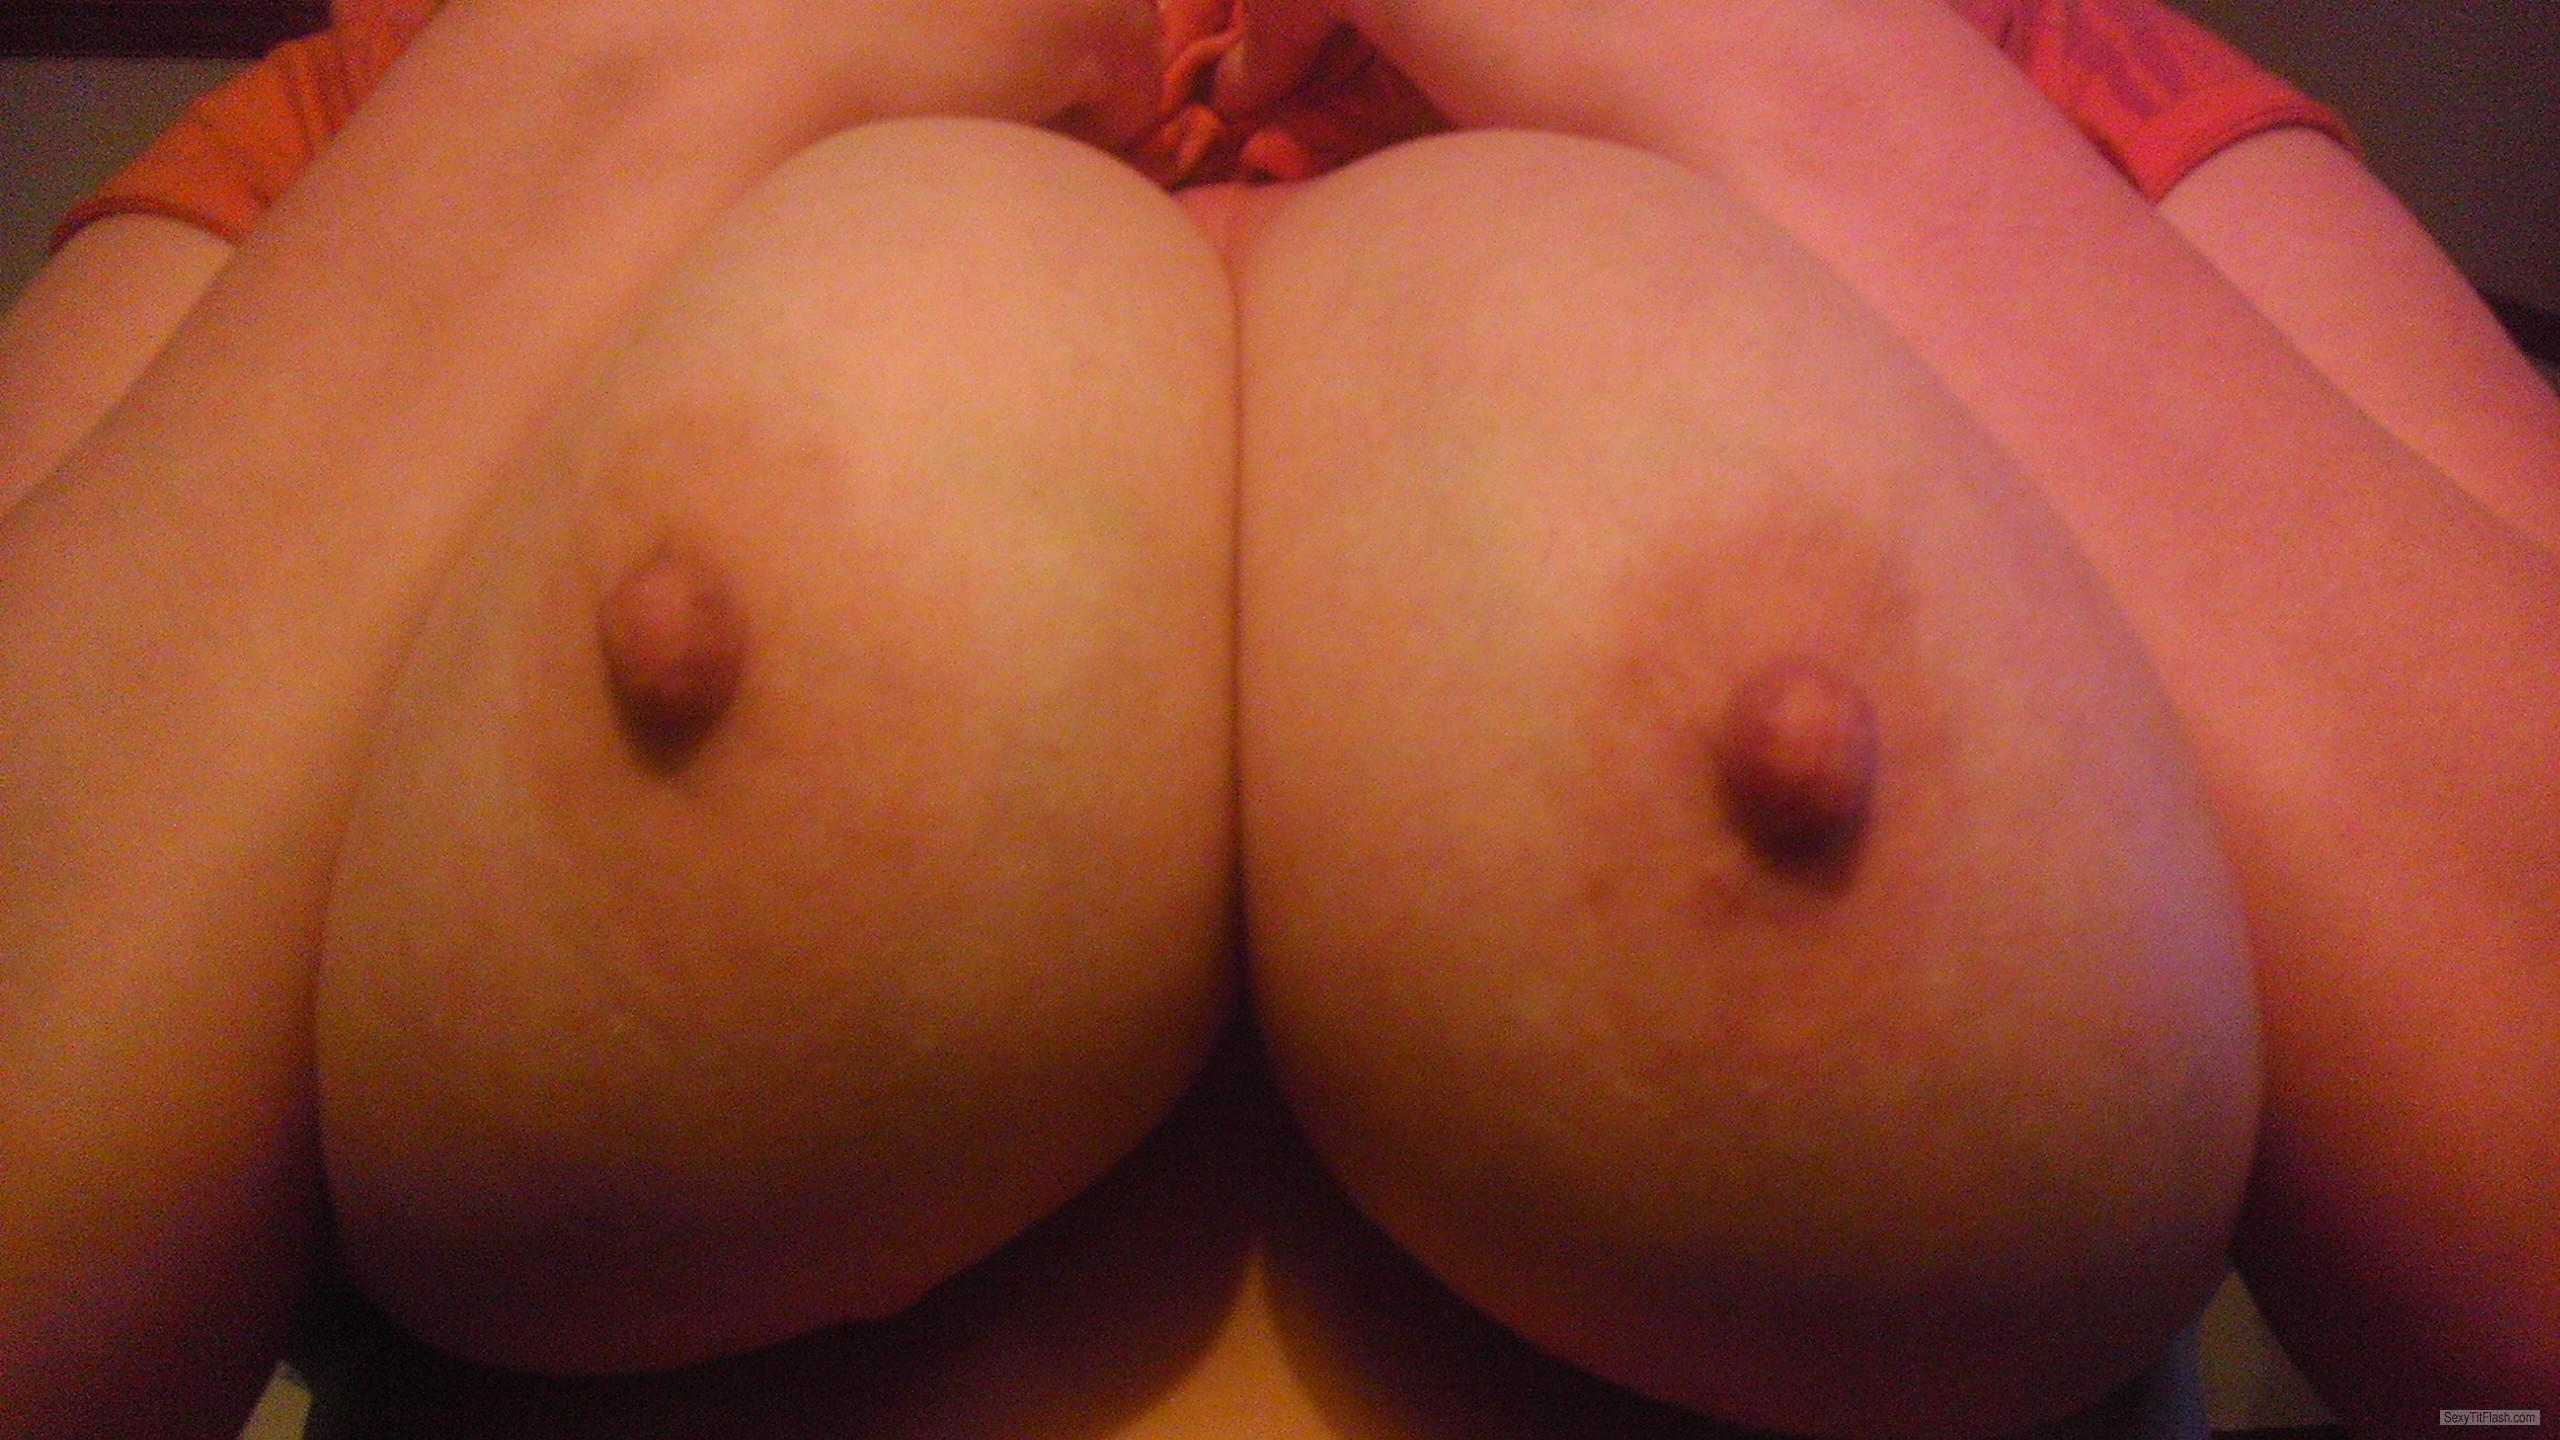 Tit Flash: My Very Big Tits - Big Naturals from United States